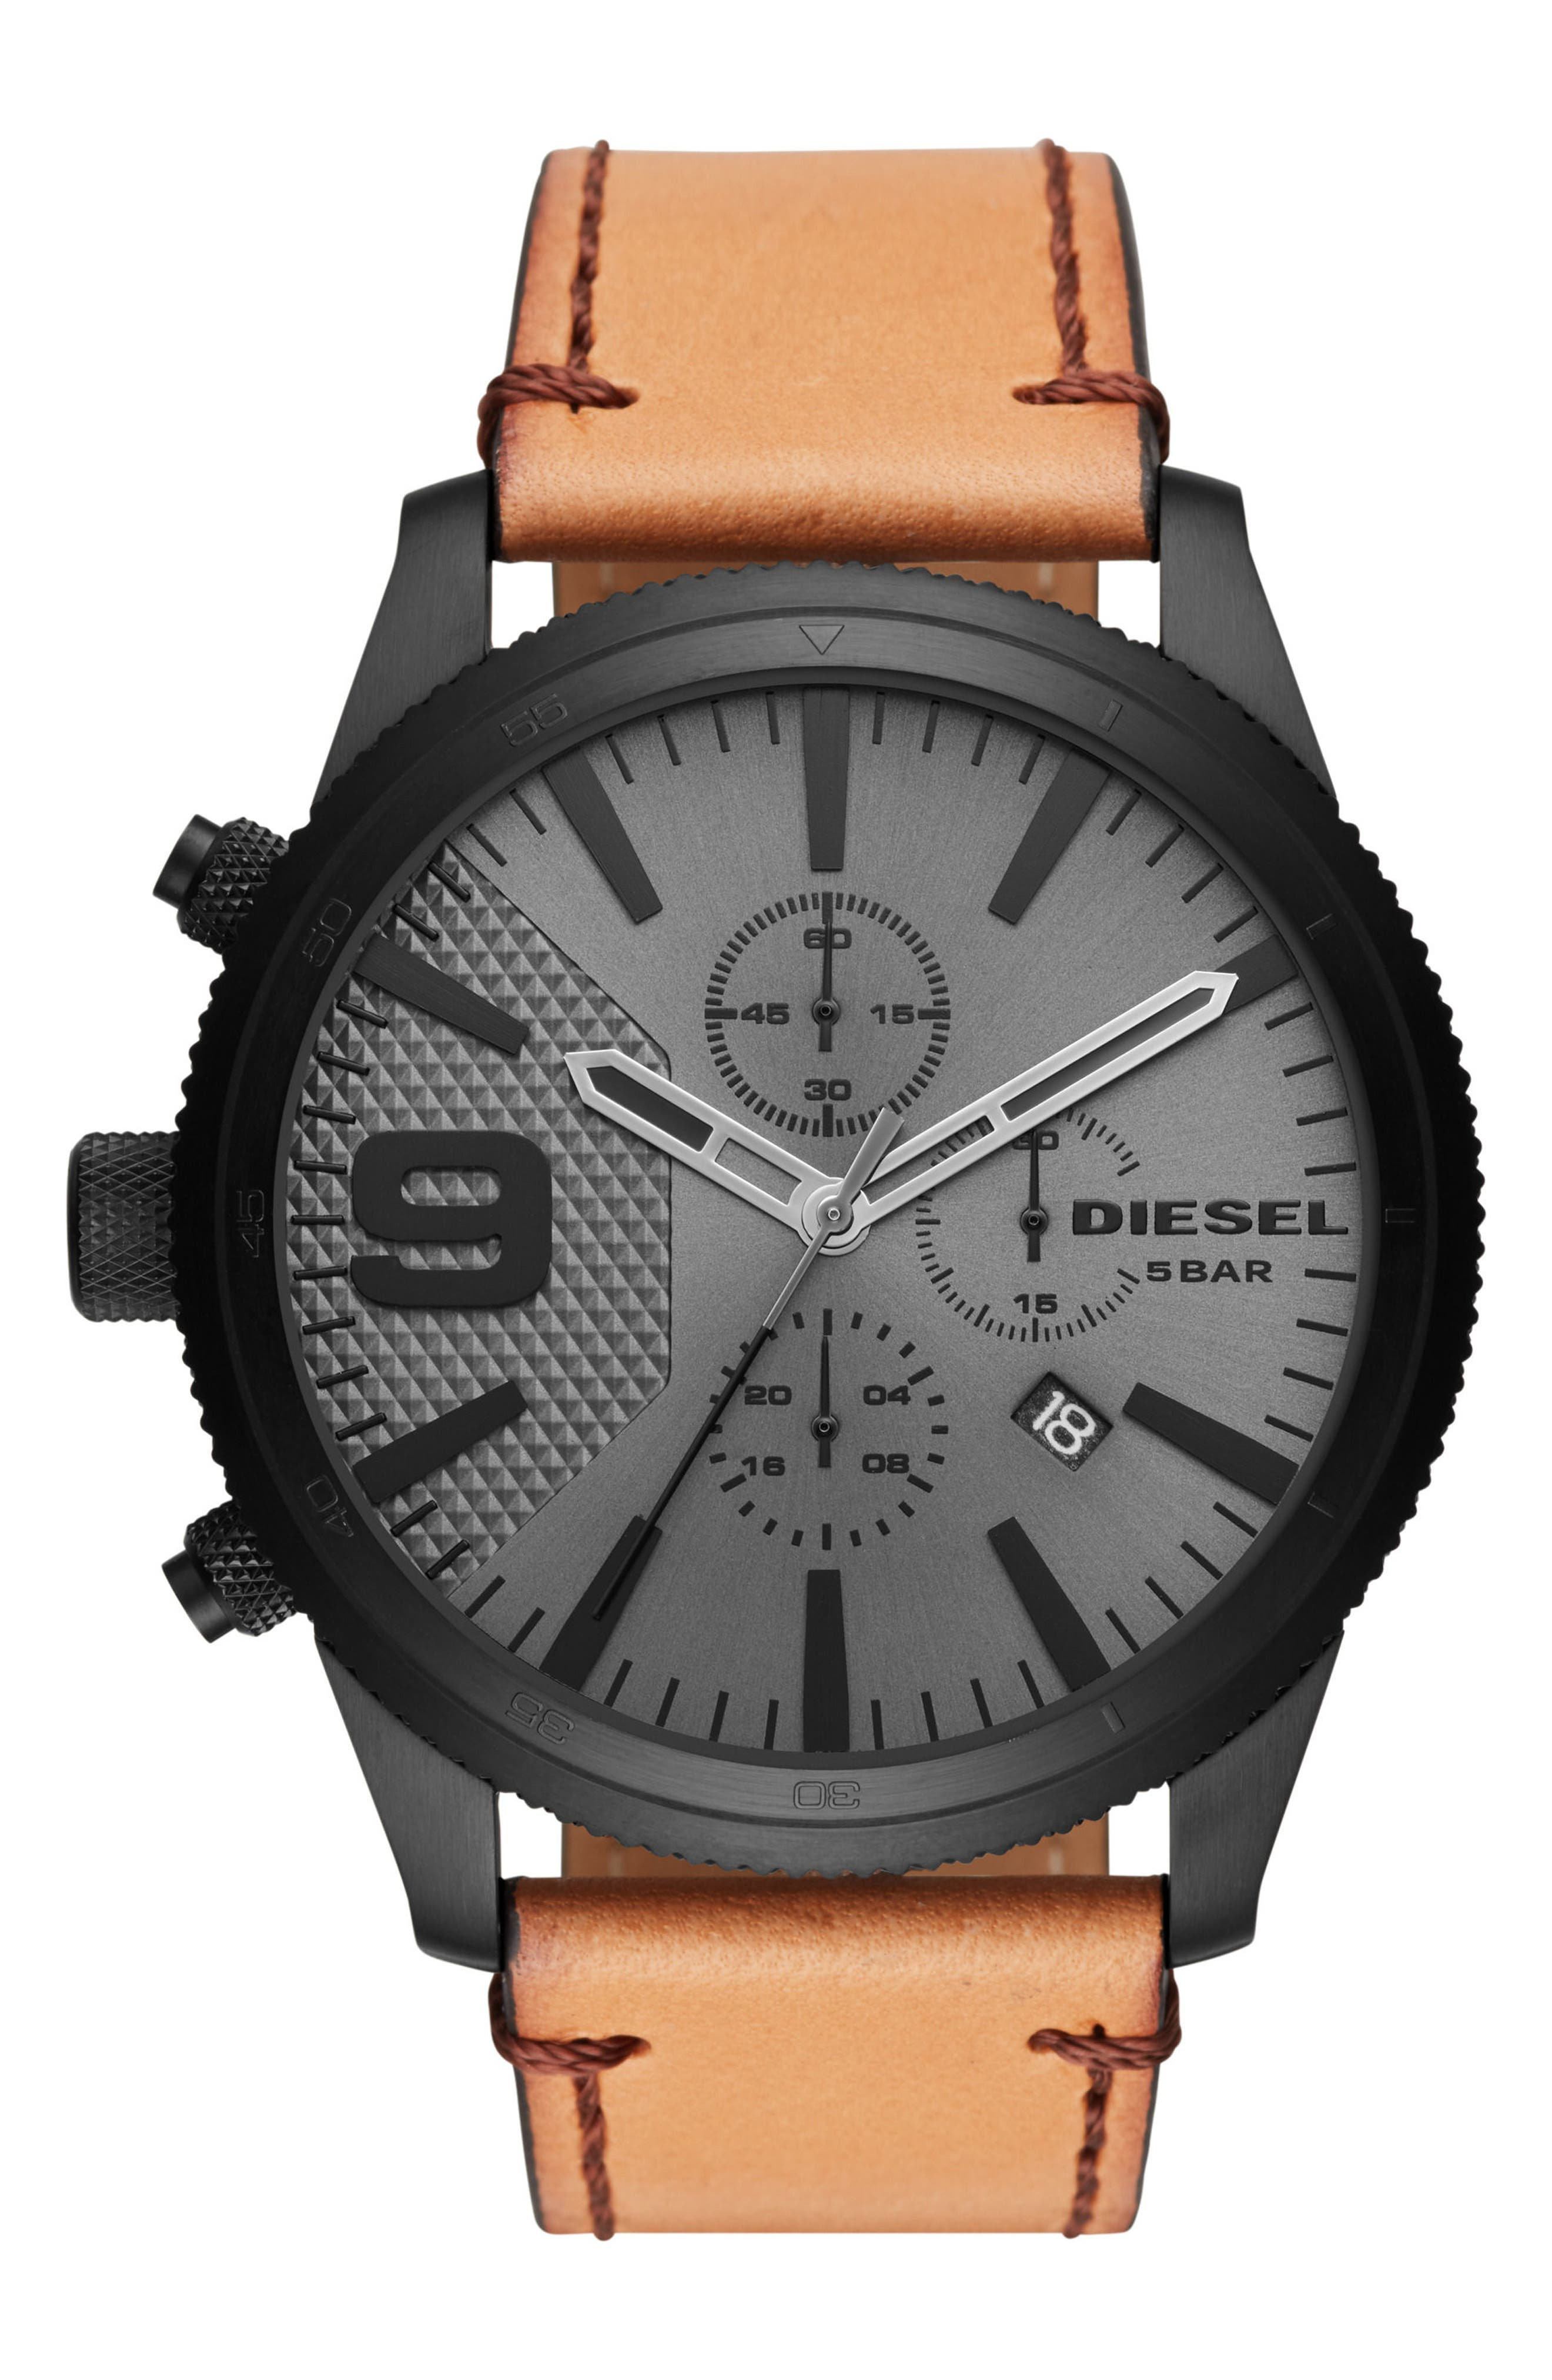 Main Image - DIESEL® Rasp Chronograph Leather Strap Watch, 50mm x 59mm